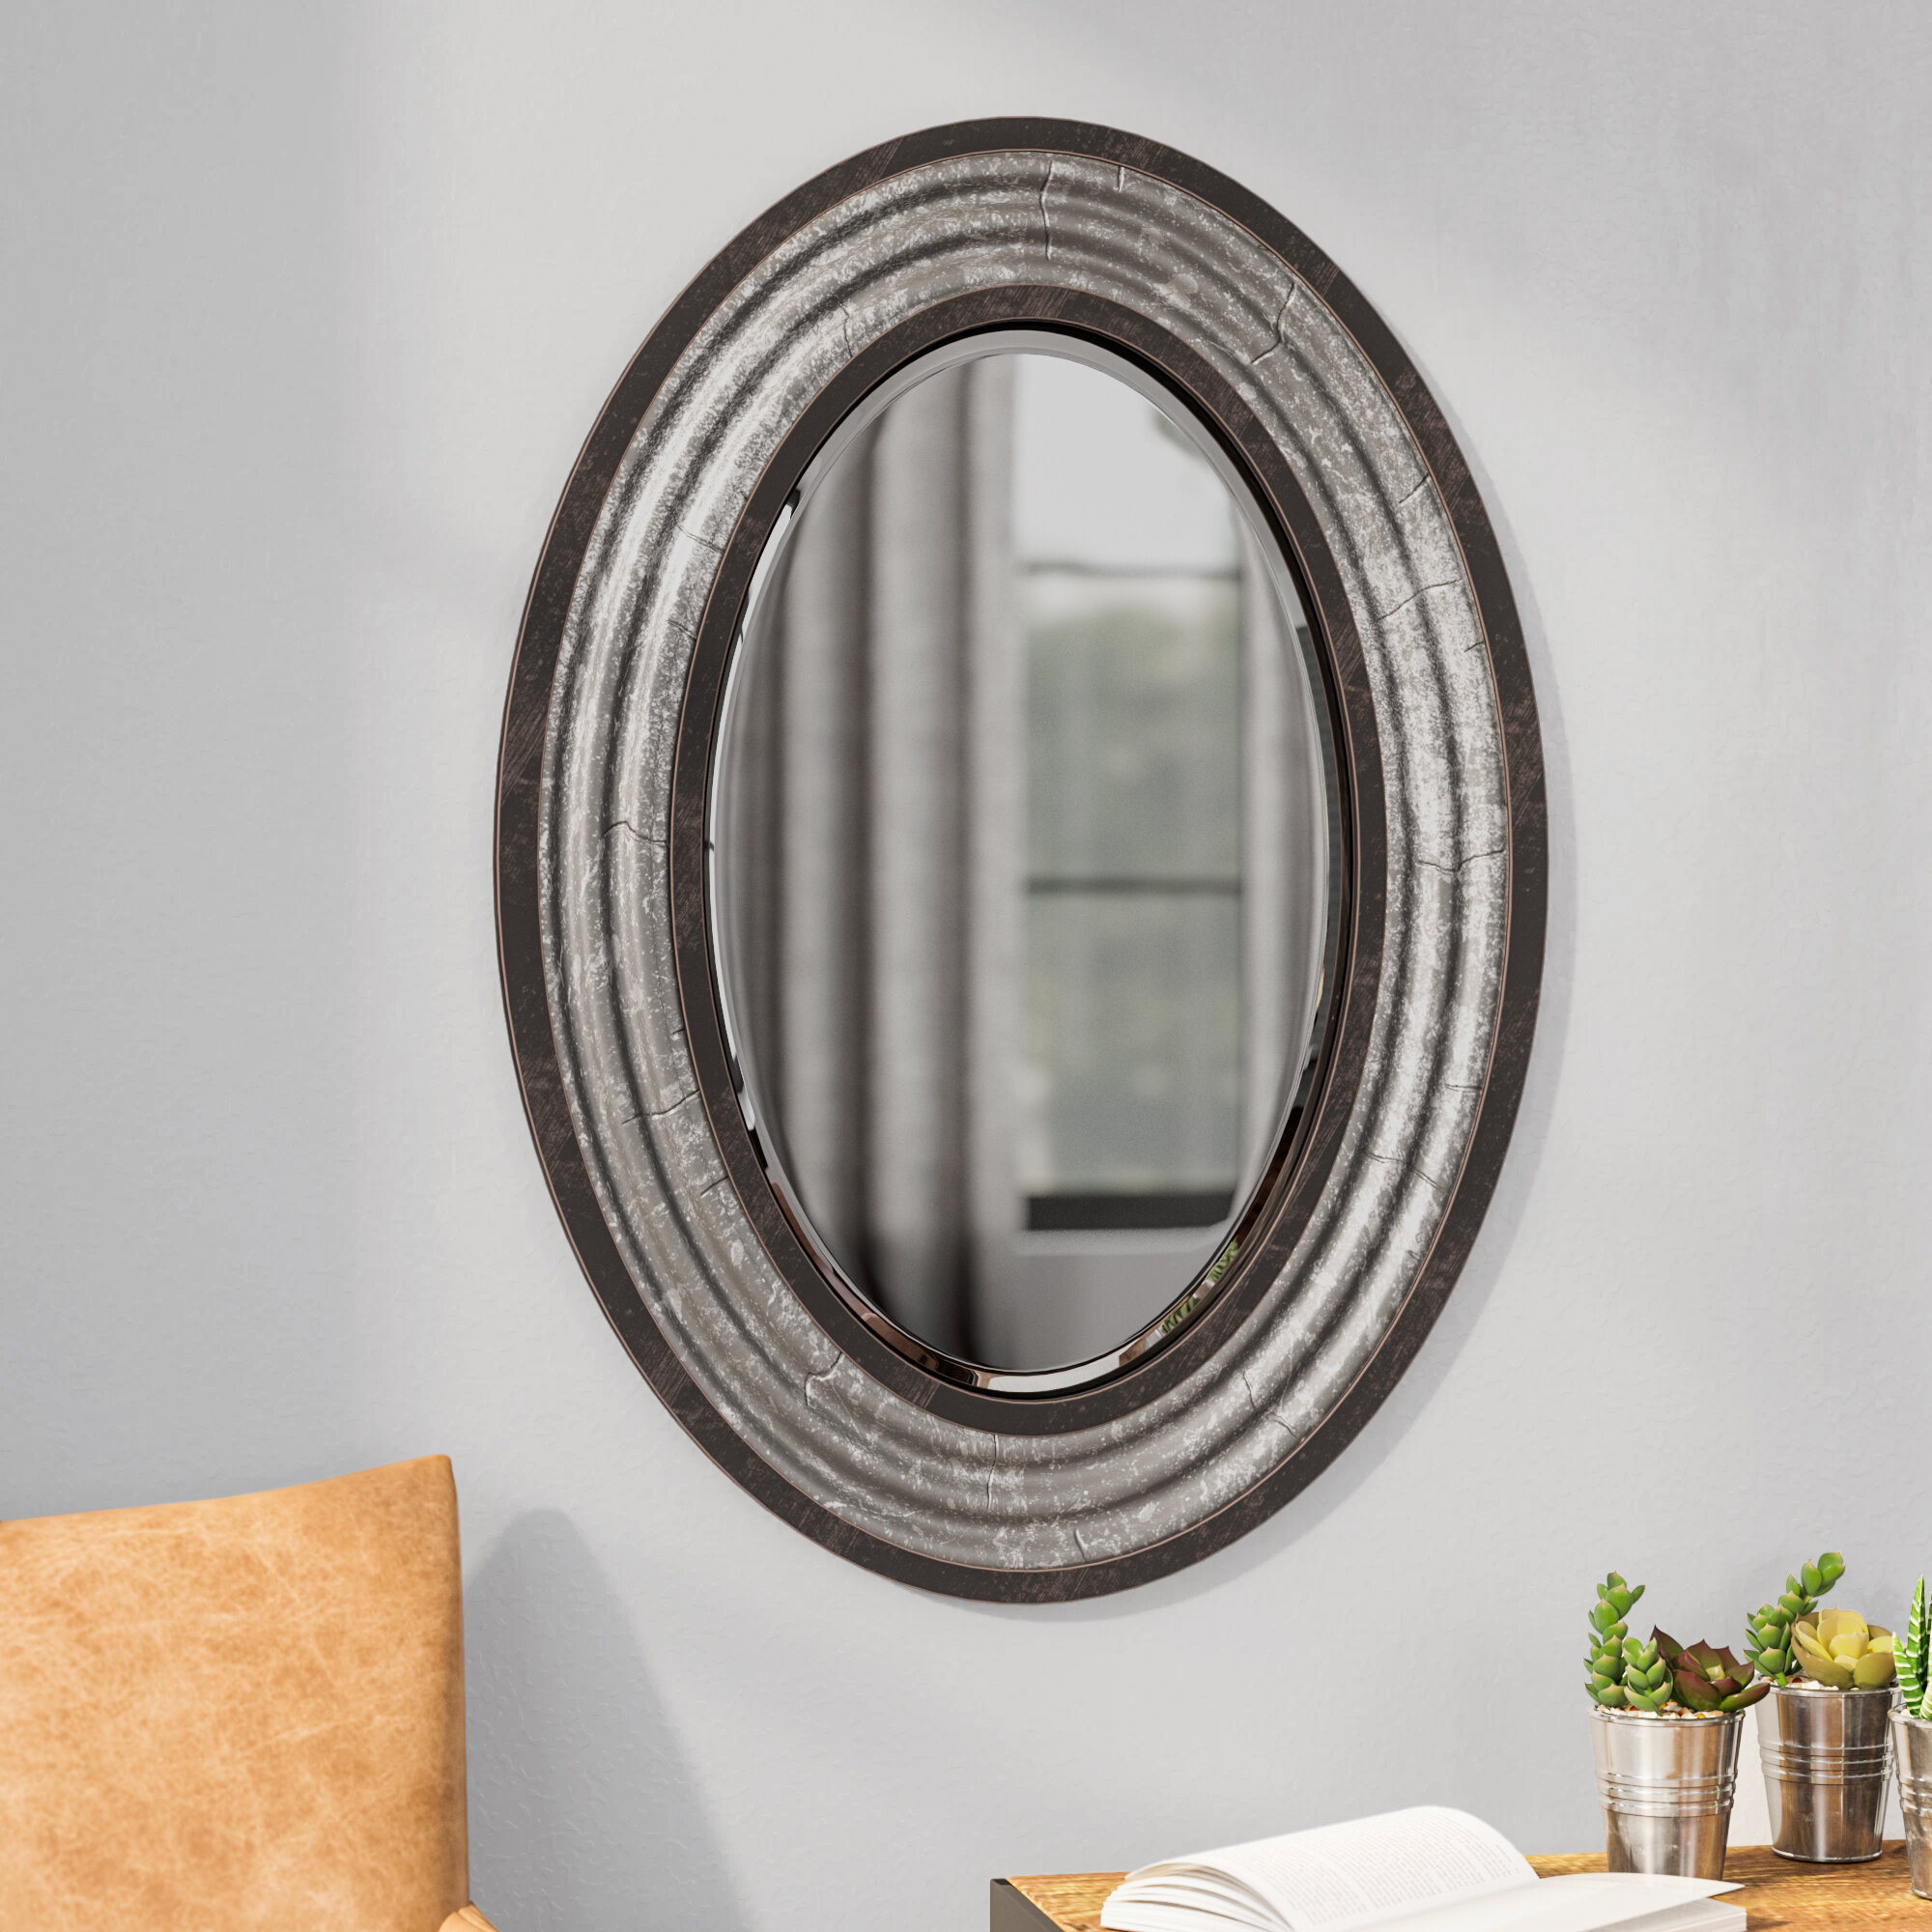 Modern & Contemporary Beveled Wall Mirror Within Industrial Modern & Contemporary Wall Mirrors (View 19 of 30)